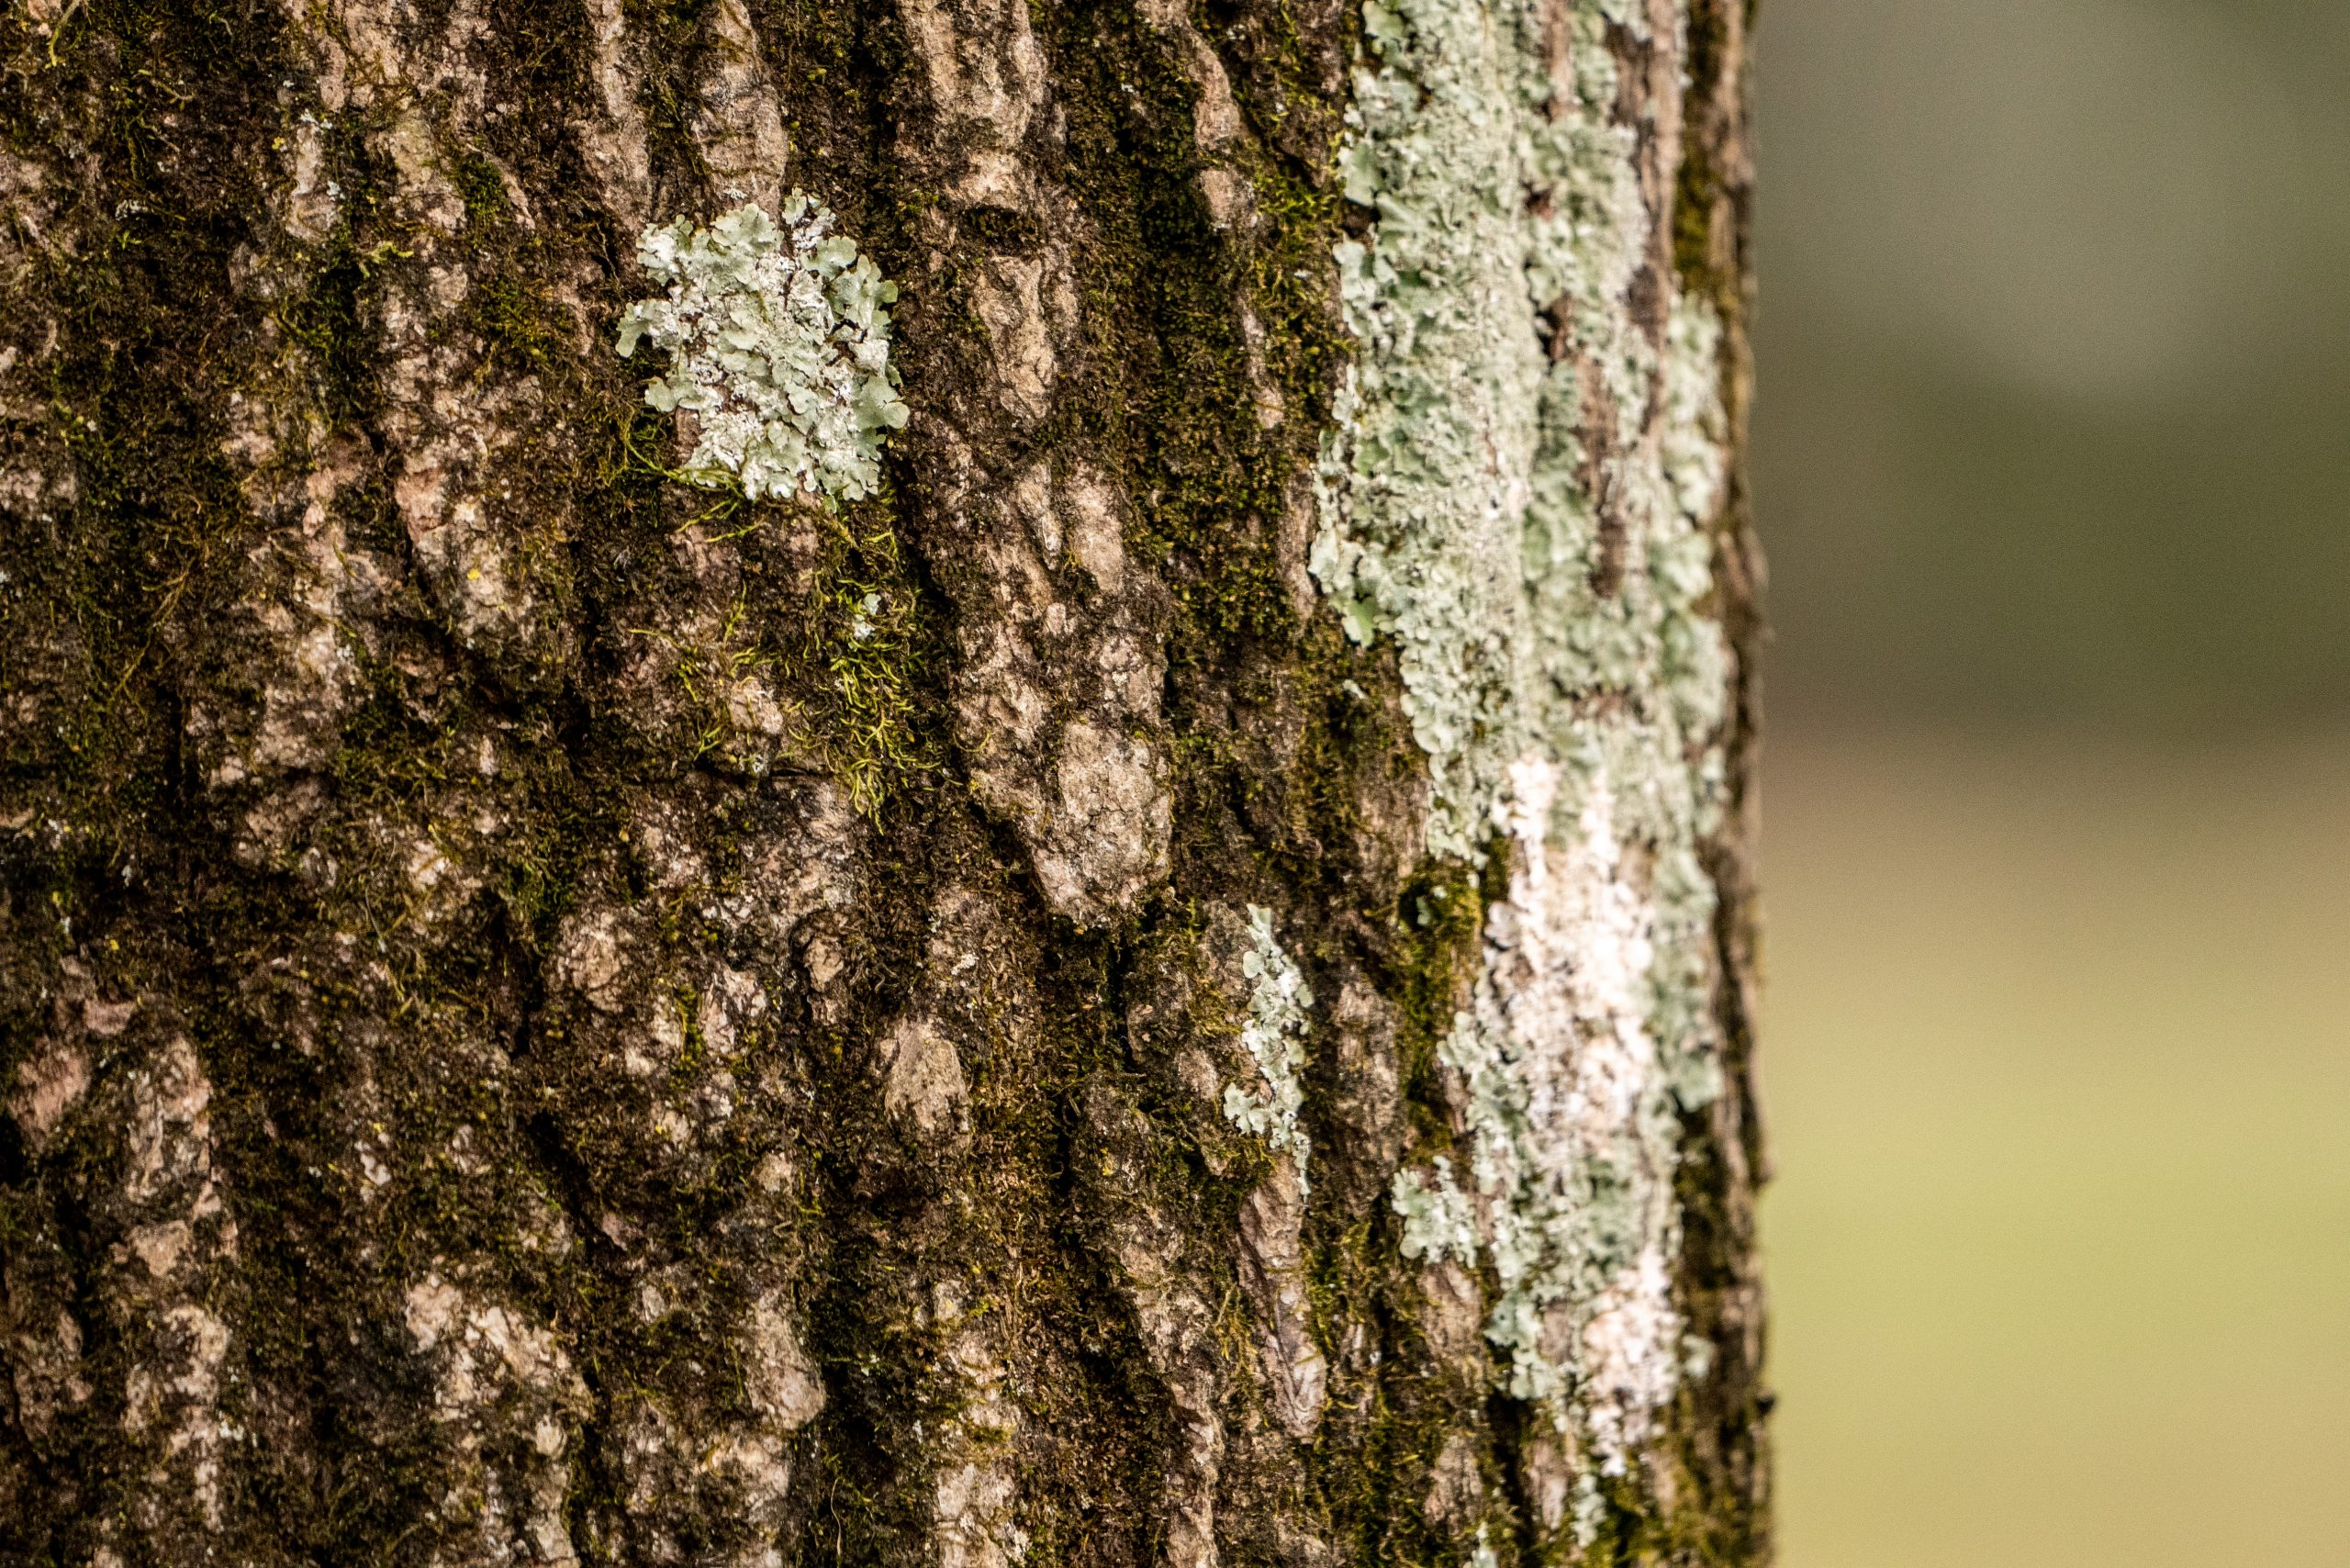 A close-up photo of the bark of a tree trunk. Some of the tree trunk is covered in moss.